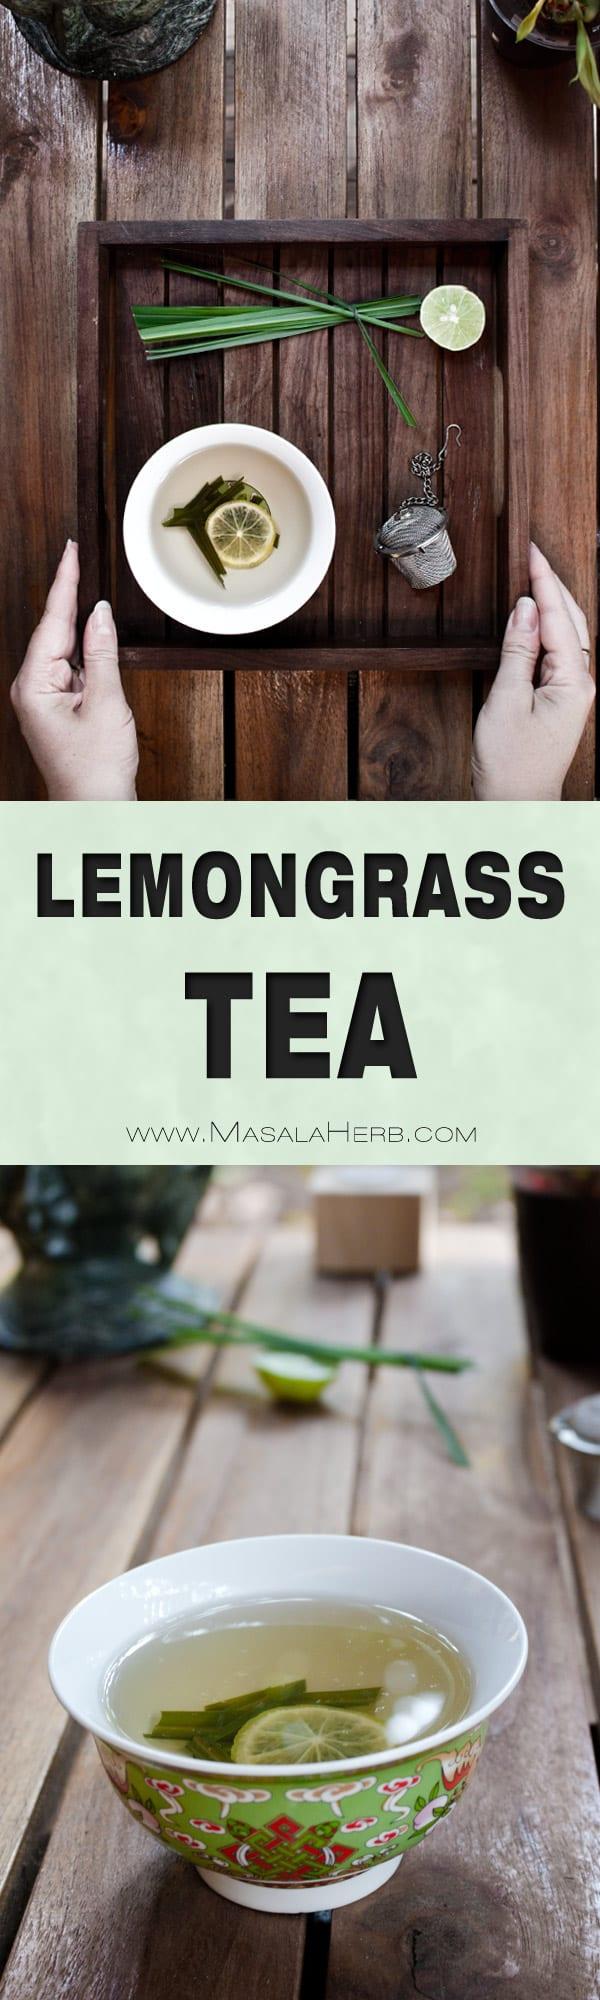 Fresh Lemongrass Tea Recipe - How to make Lemongrass Tea from scratch at home, detoxifying hot ftea to revitatize the senses. This tea helps to clear the mind, to focus and it does curb appetite. www.MasalaHerb.com